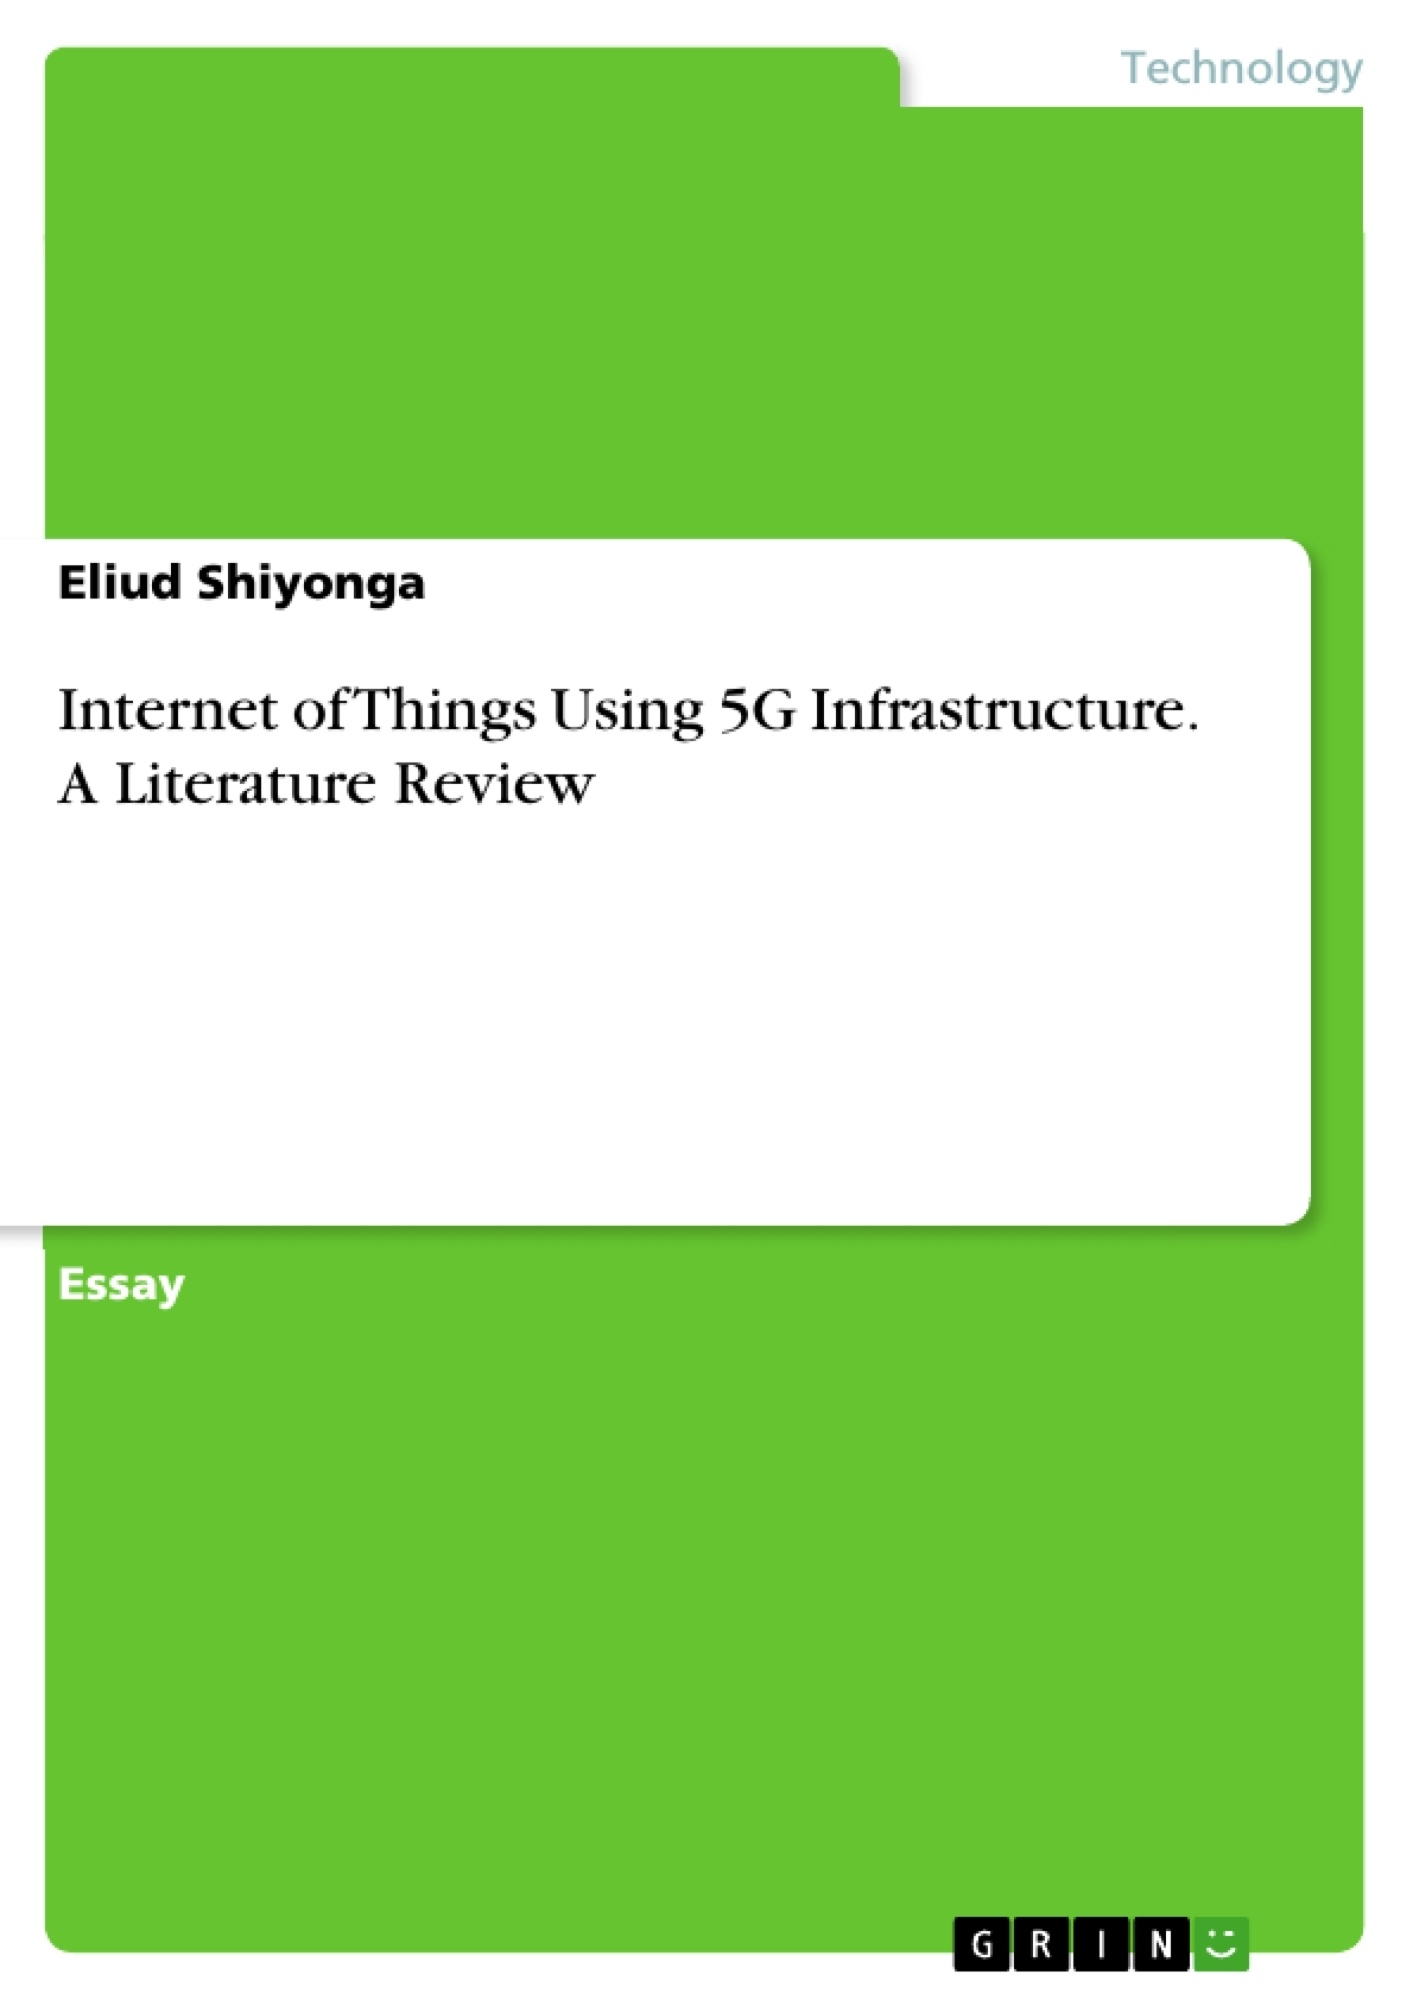 master thesis literature review